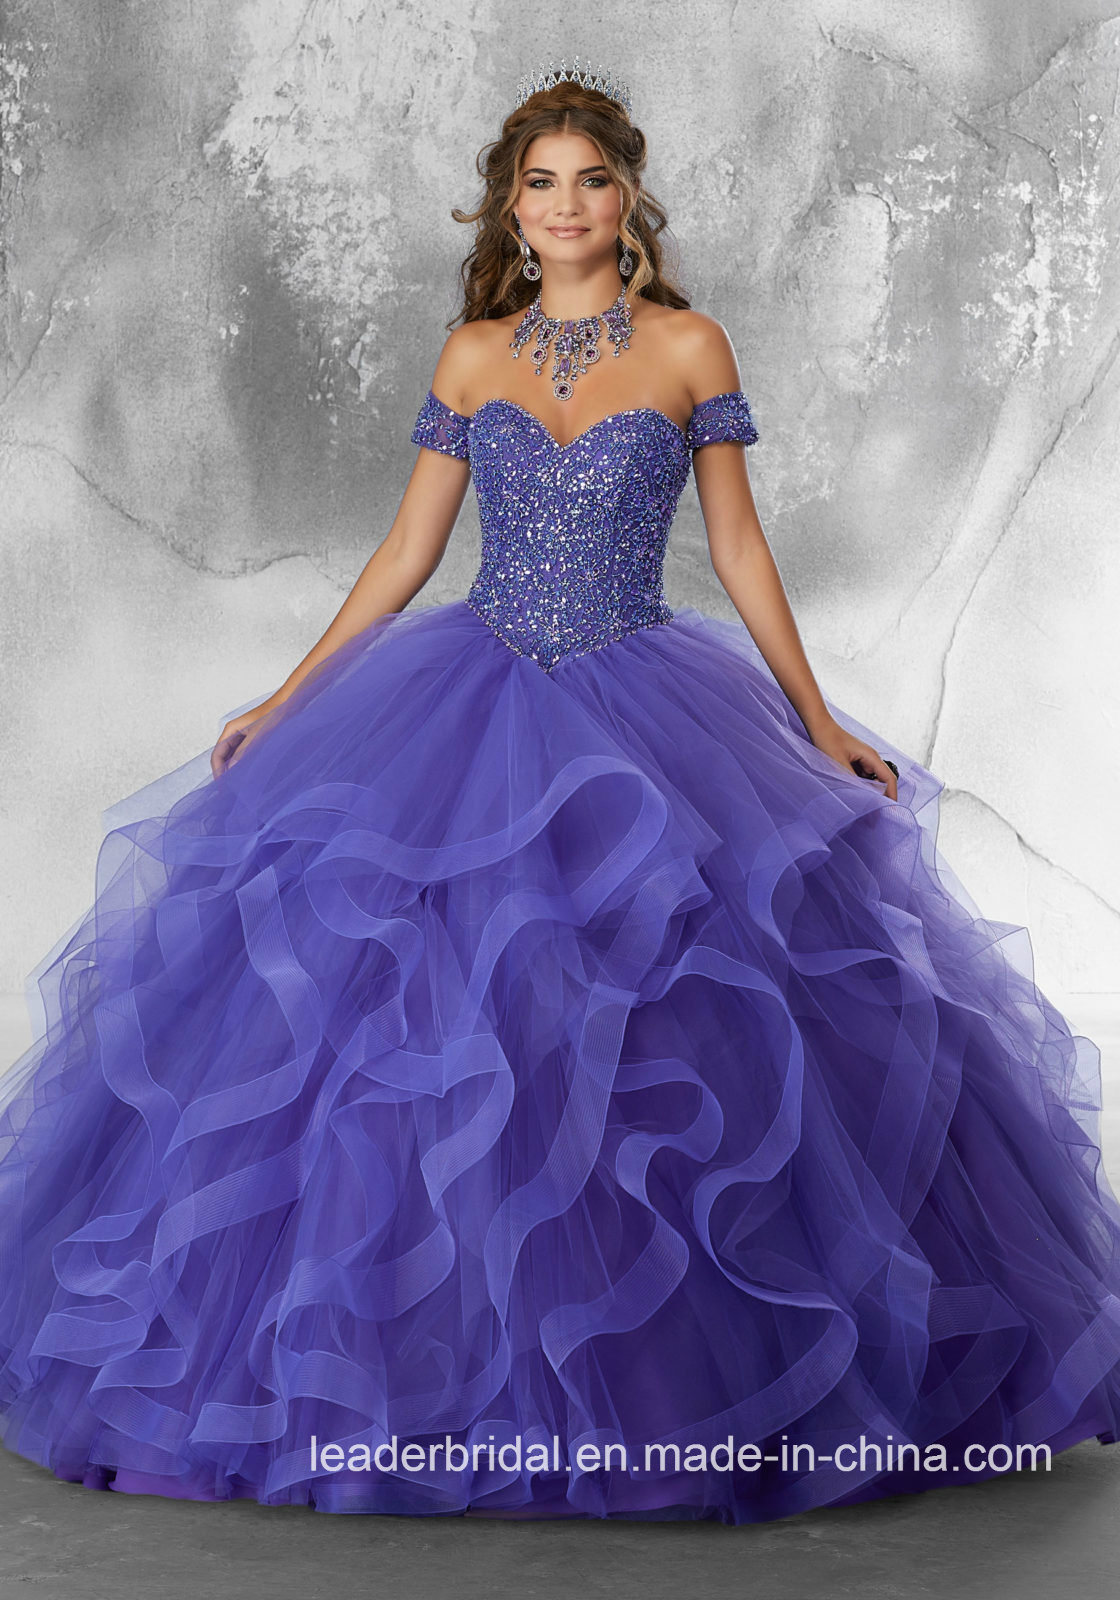 [Hot Item] Purple Quinceanera Dress Ball Gown Beaded Tulle Prom Dresses Q205